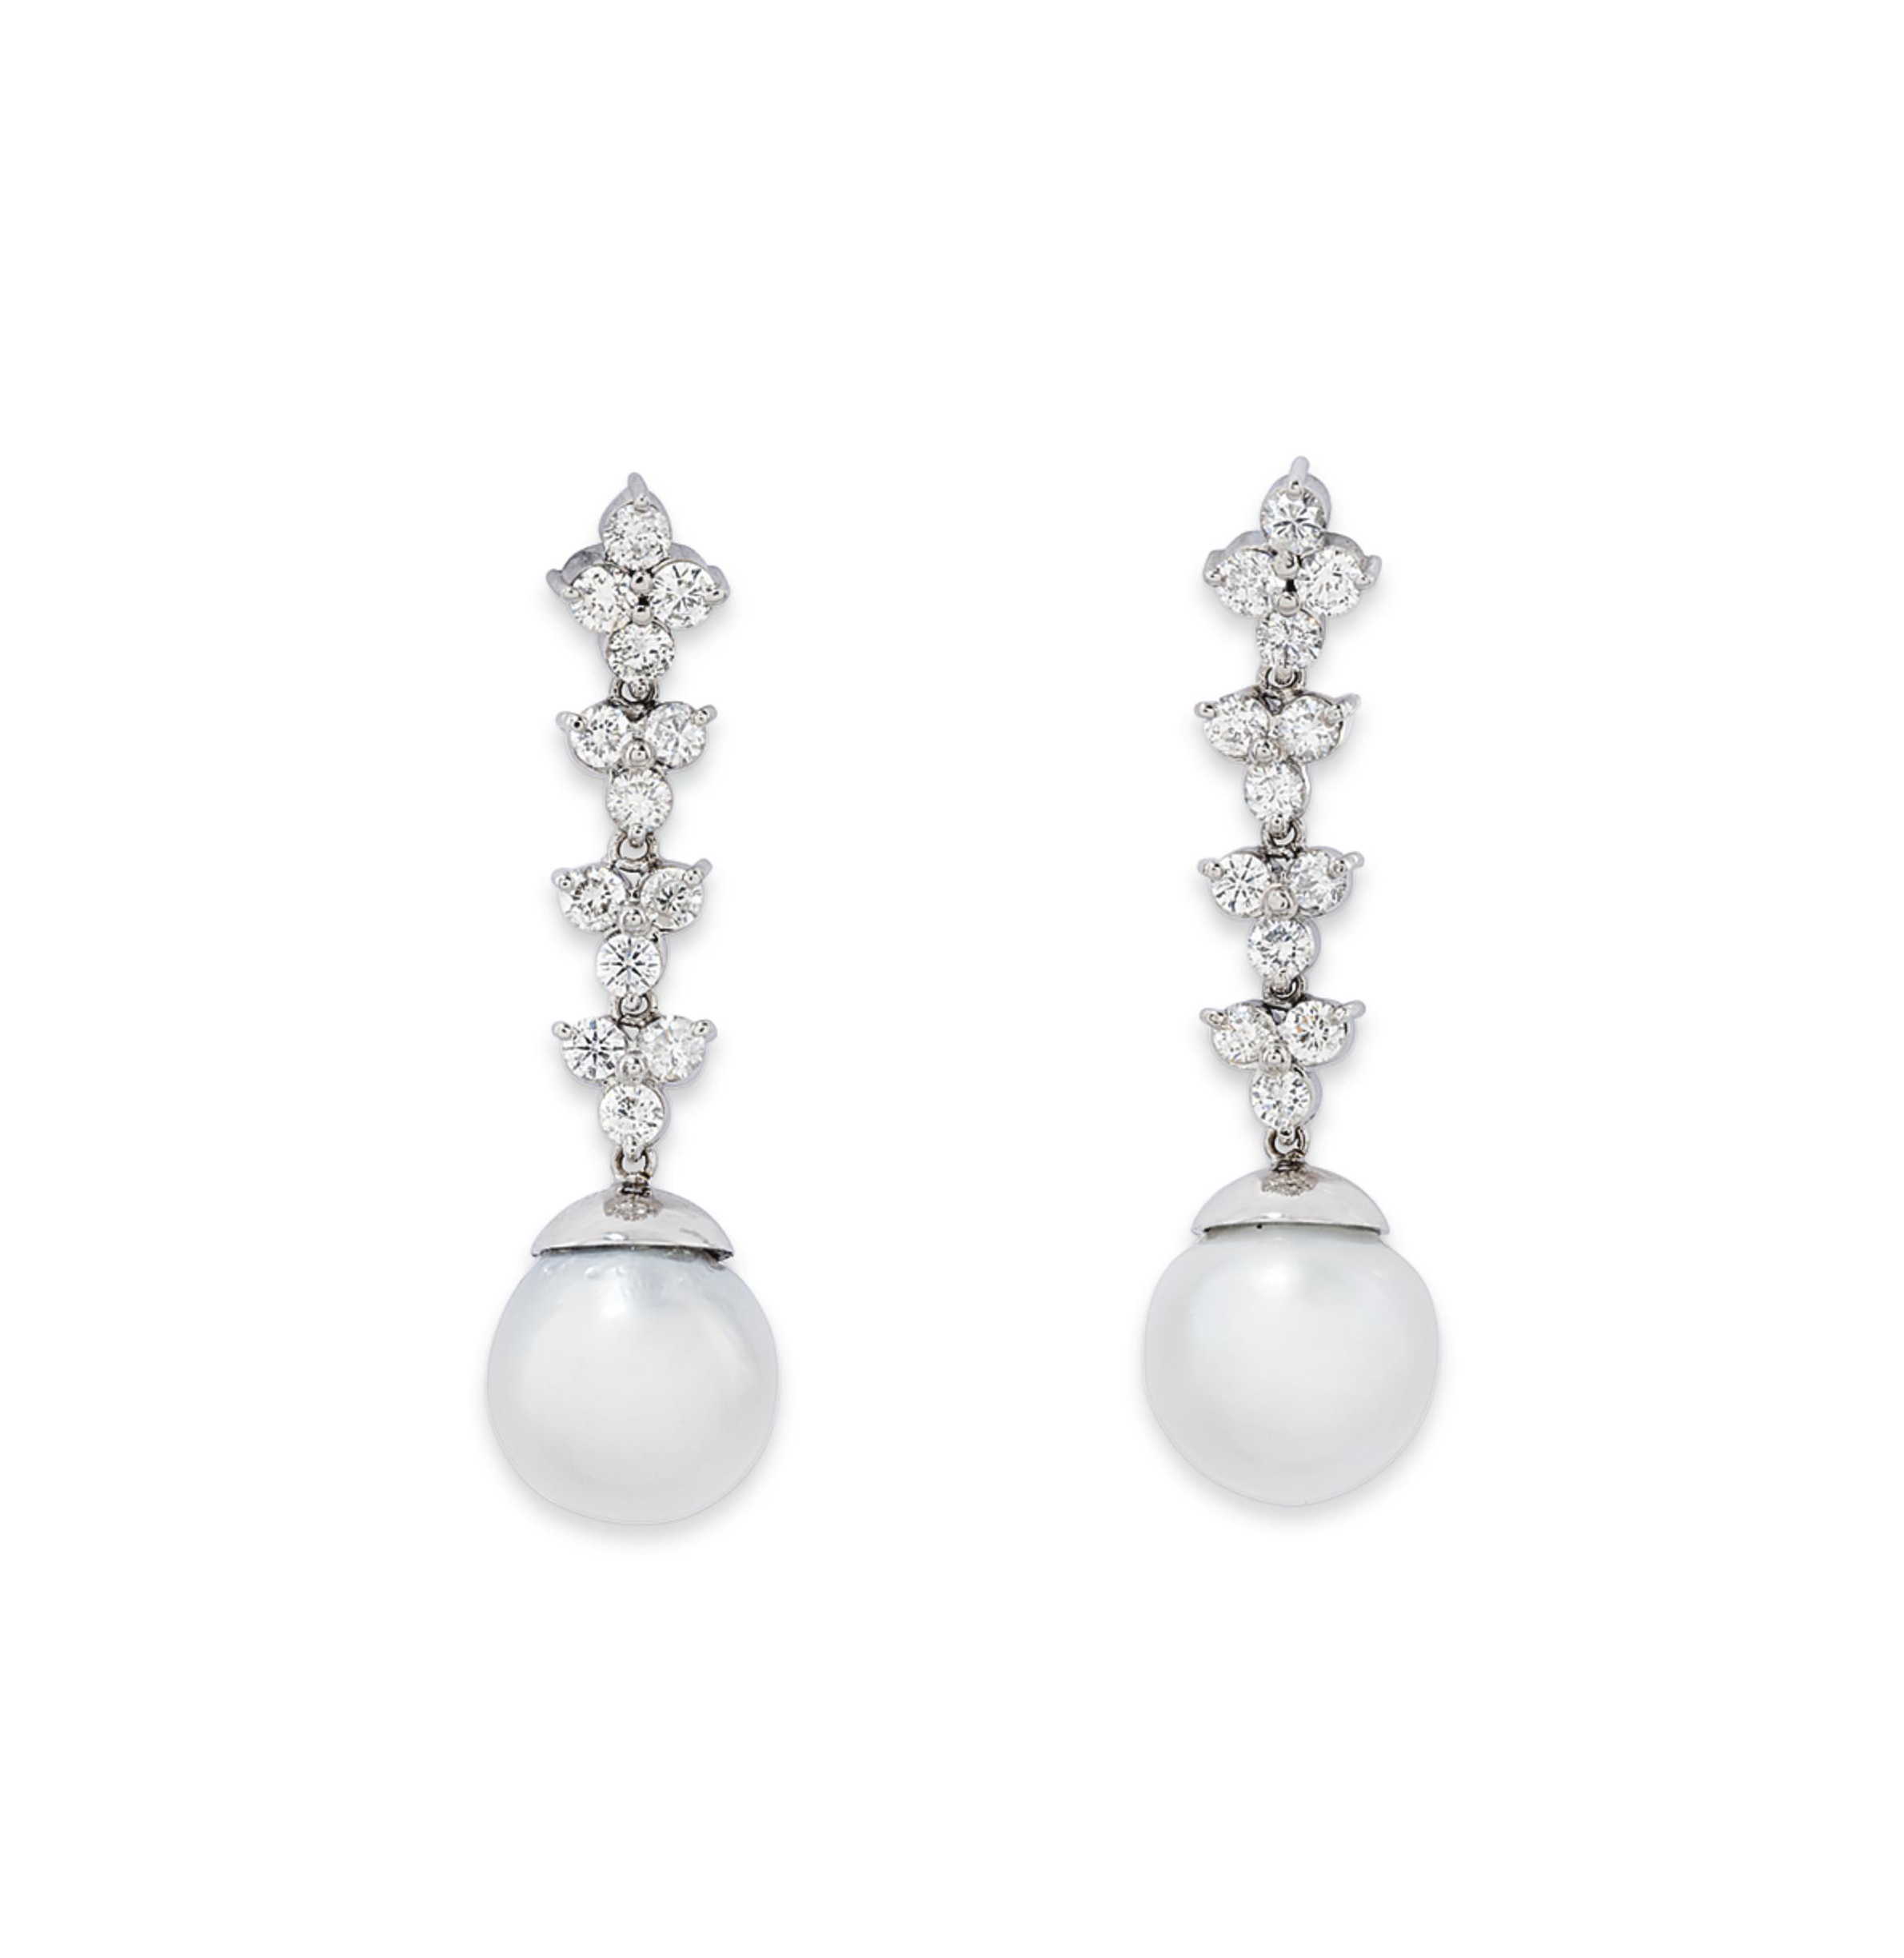 TWO PAIRS OF CULTURED PEARL, E